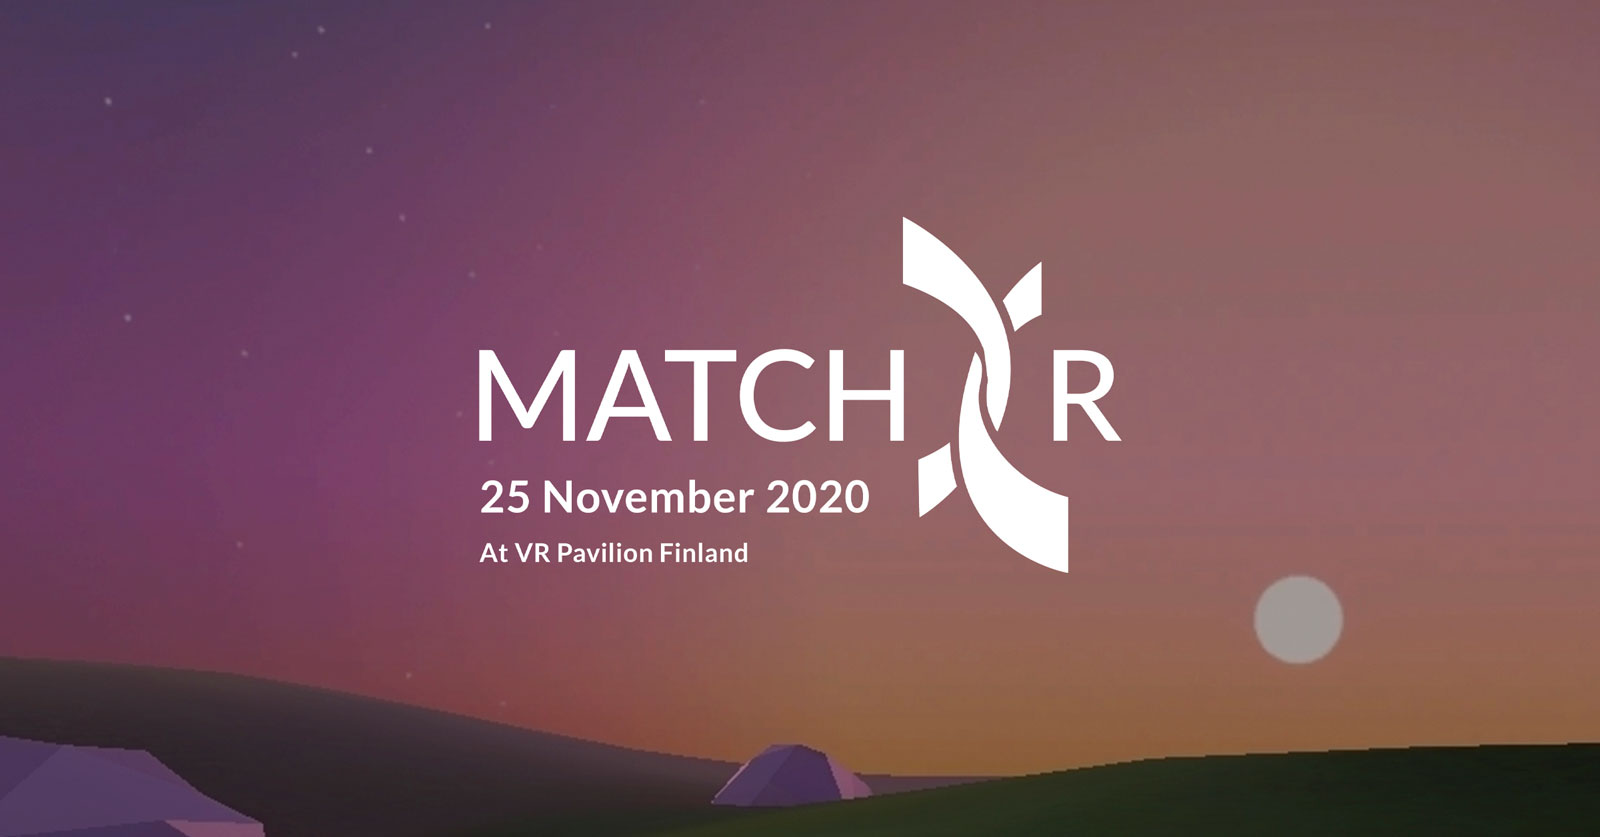 Virtual Reality landscape of a sunset. Text in the middle says: Match XR, 25 November 2020, At VR Pavilion Finland.